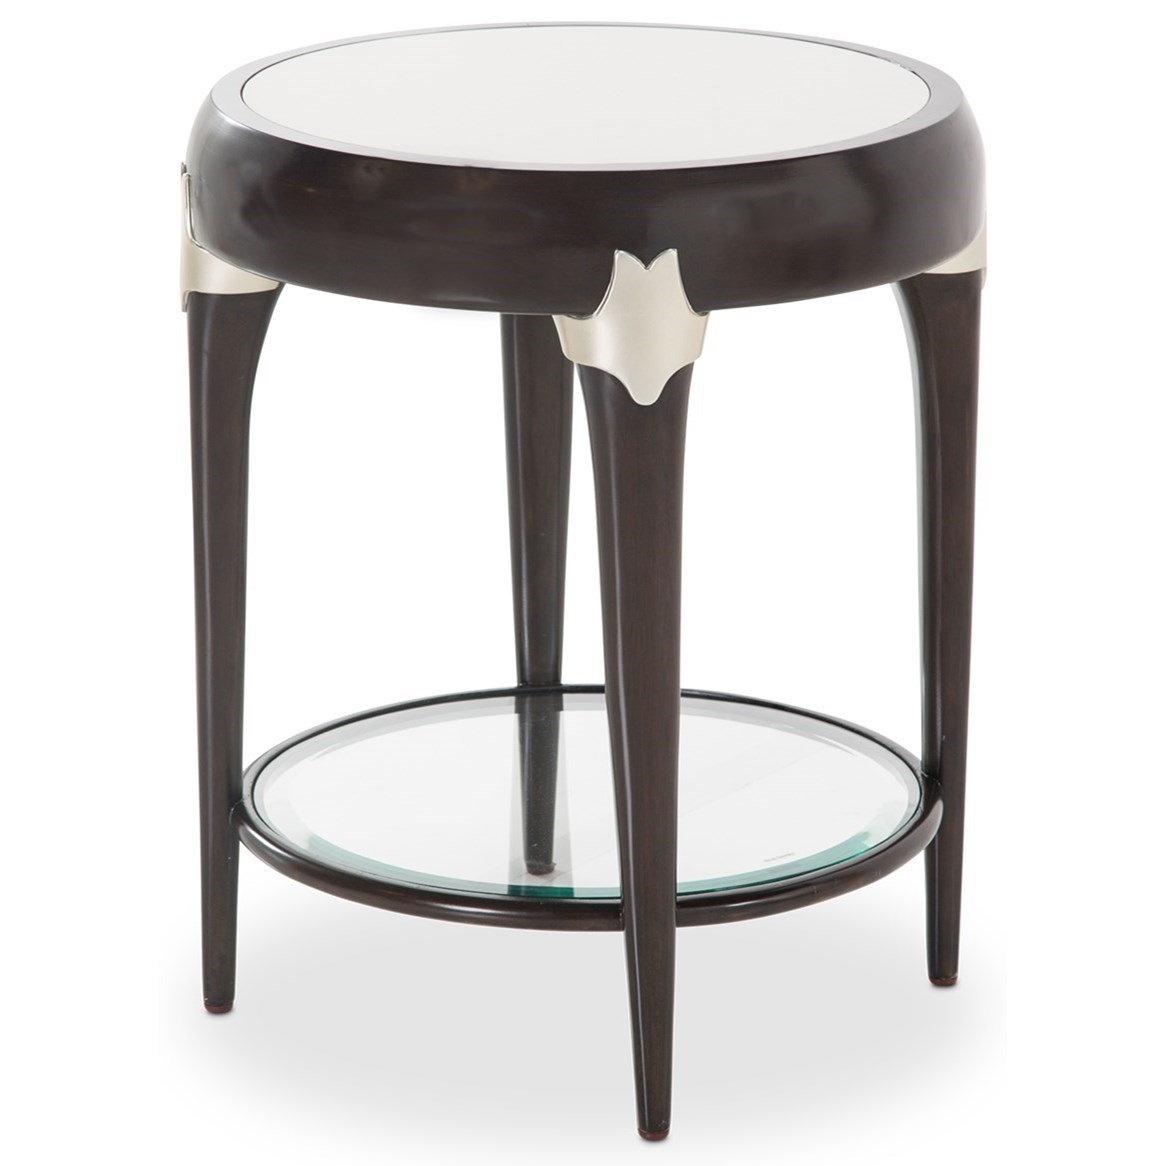 Paris Chic Round Accent Table by Michael Amini at Darvin Furniture